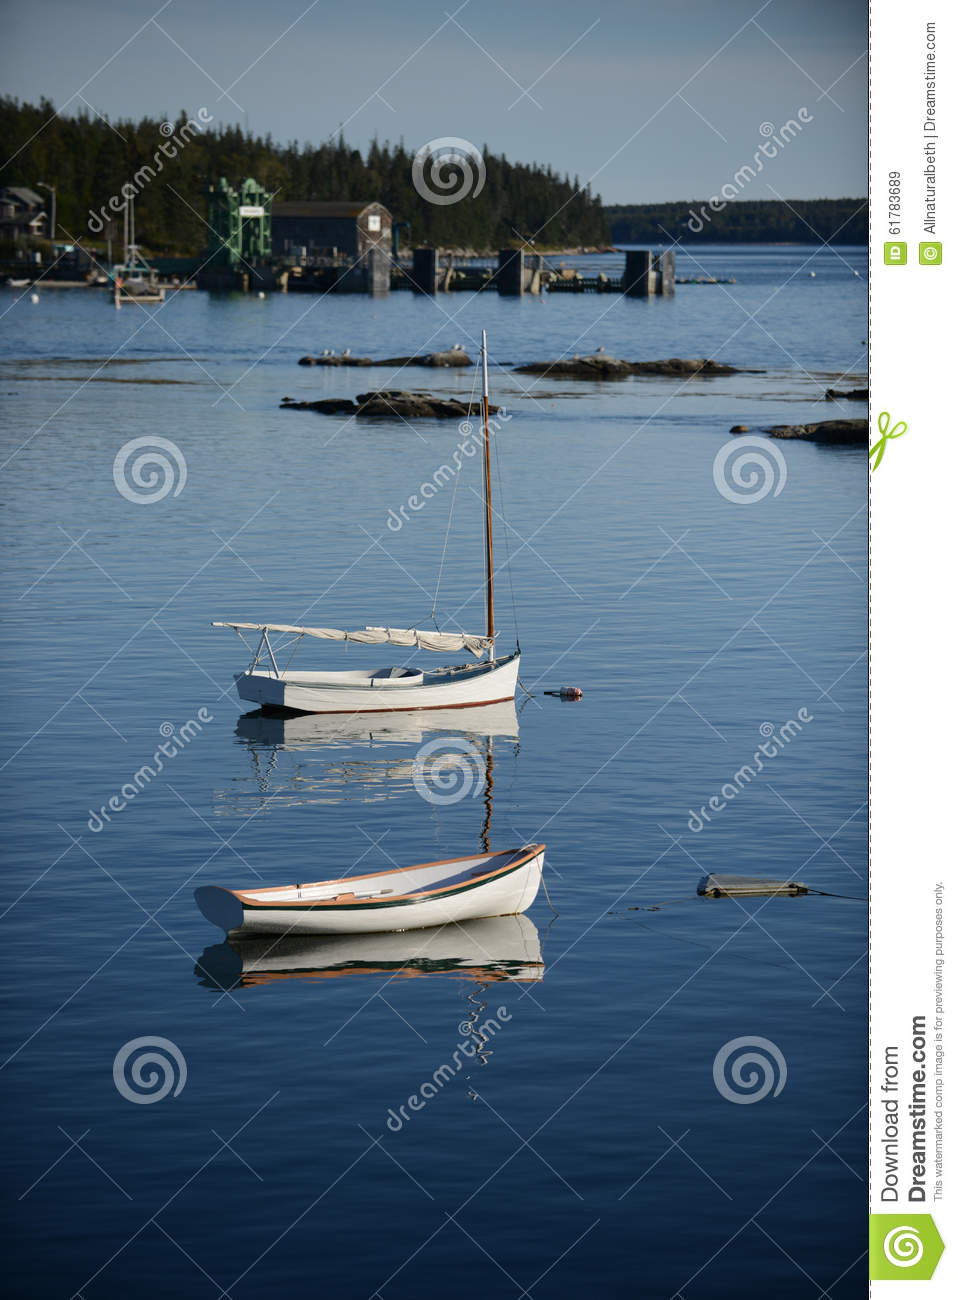 Scenic maine fishing village royalty free stock for Fishing boat dealers near me